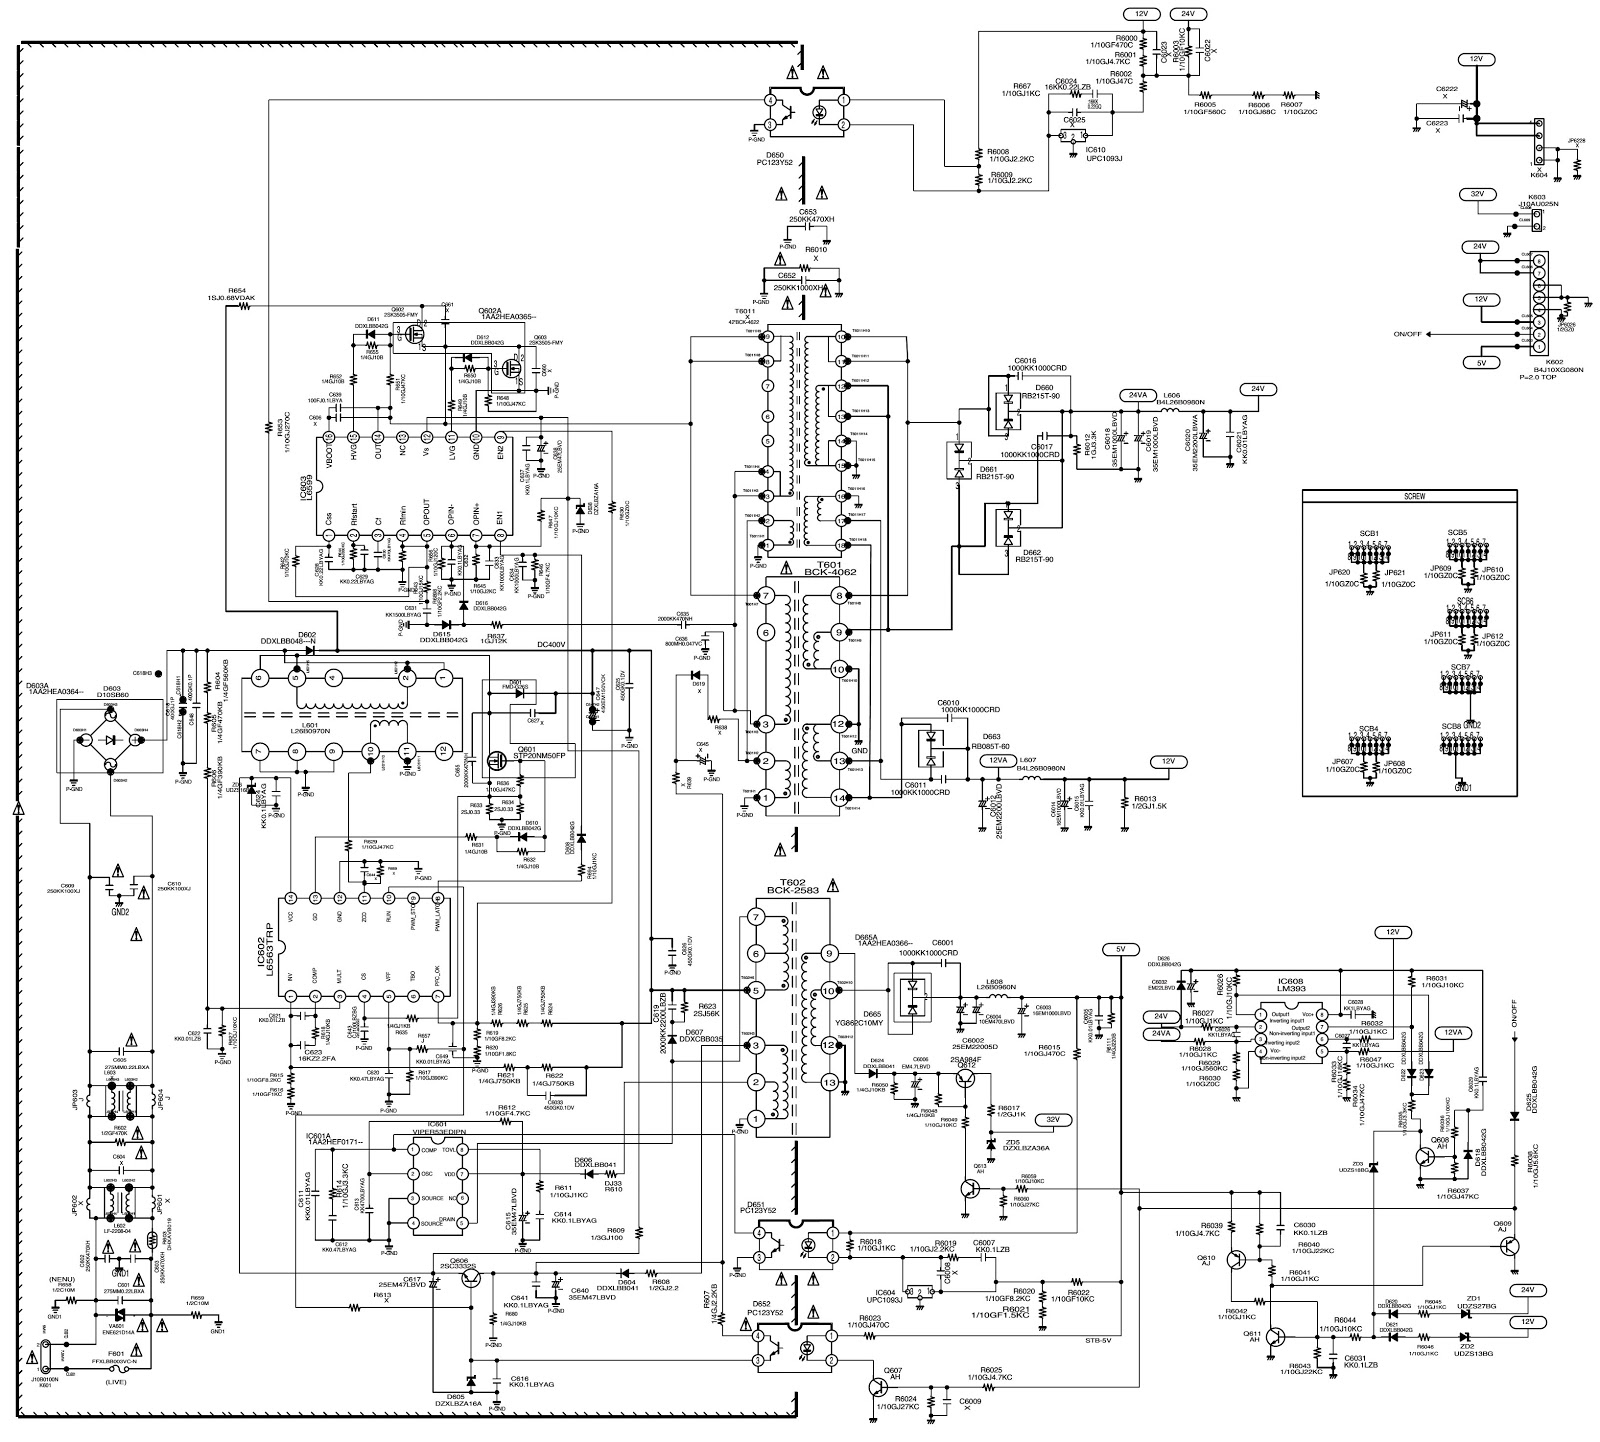 medium resolution of sanyo tv diagram wiring diagram yer sanyo tv diagram sanyo tv diagram